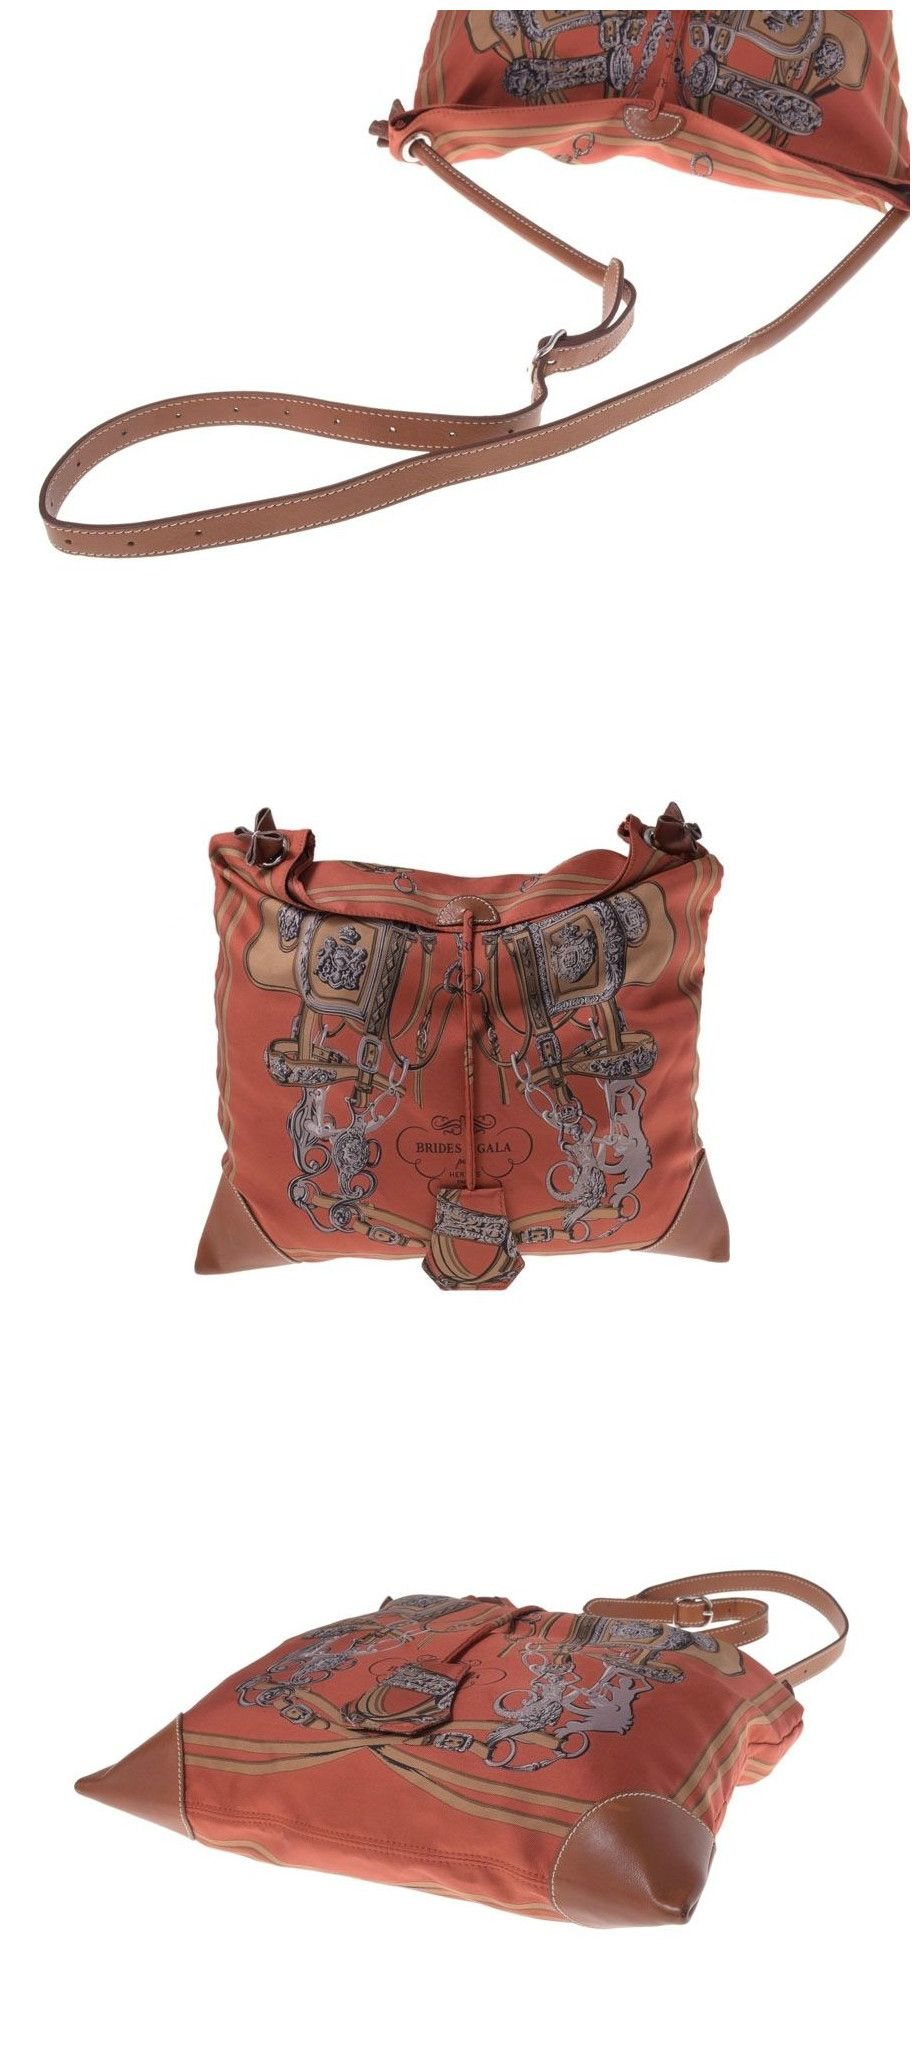 #Hermes Silky City PM #Silk / #Leather with Pouch N #stamp. Buy it now :  http://buff.ly/1KBITYY